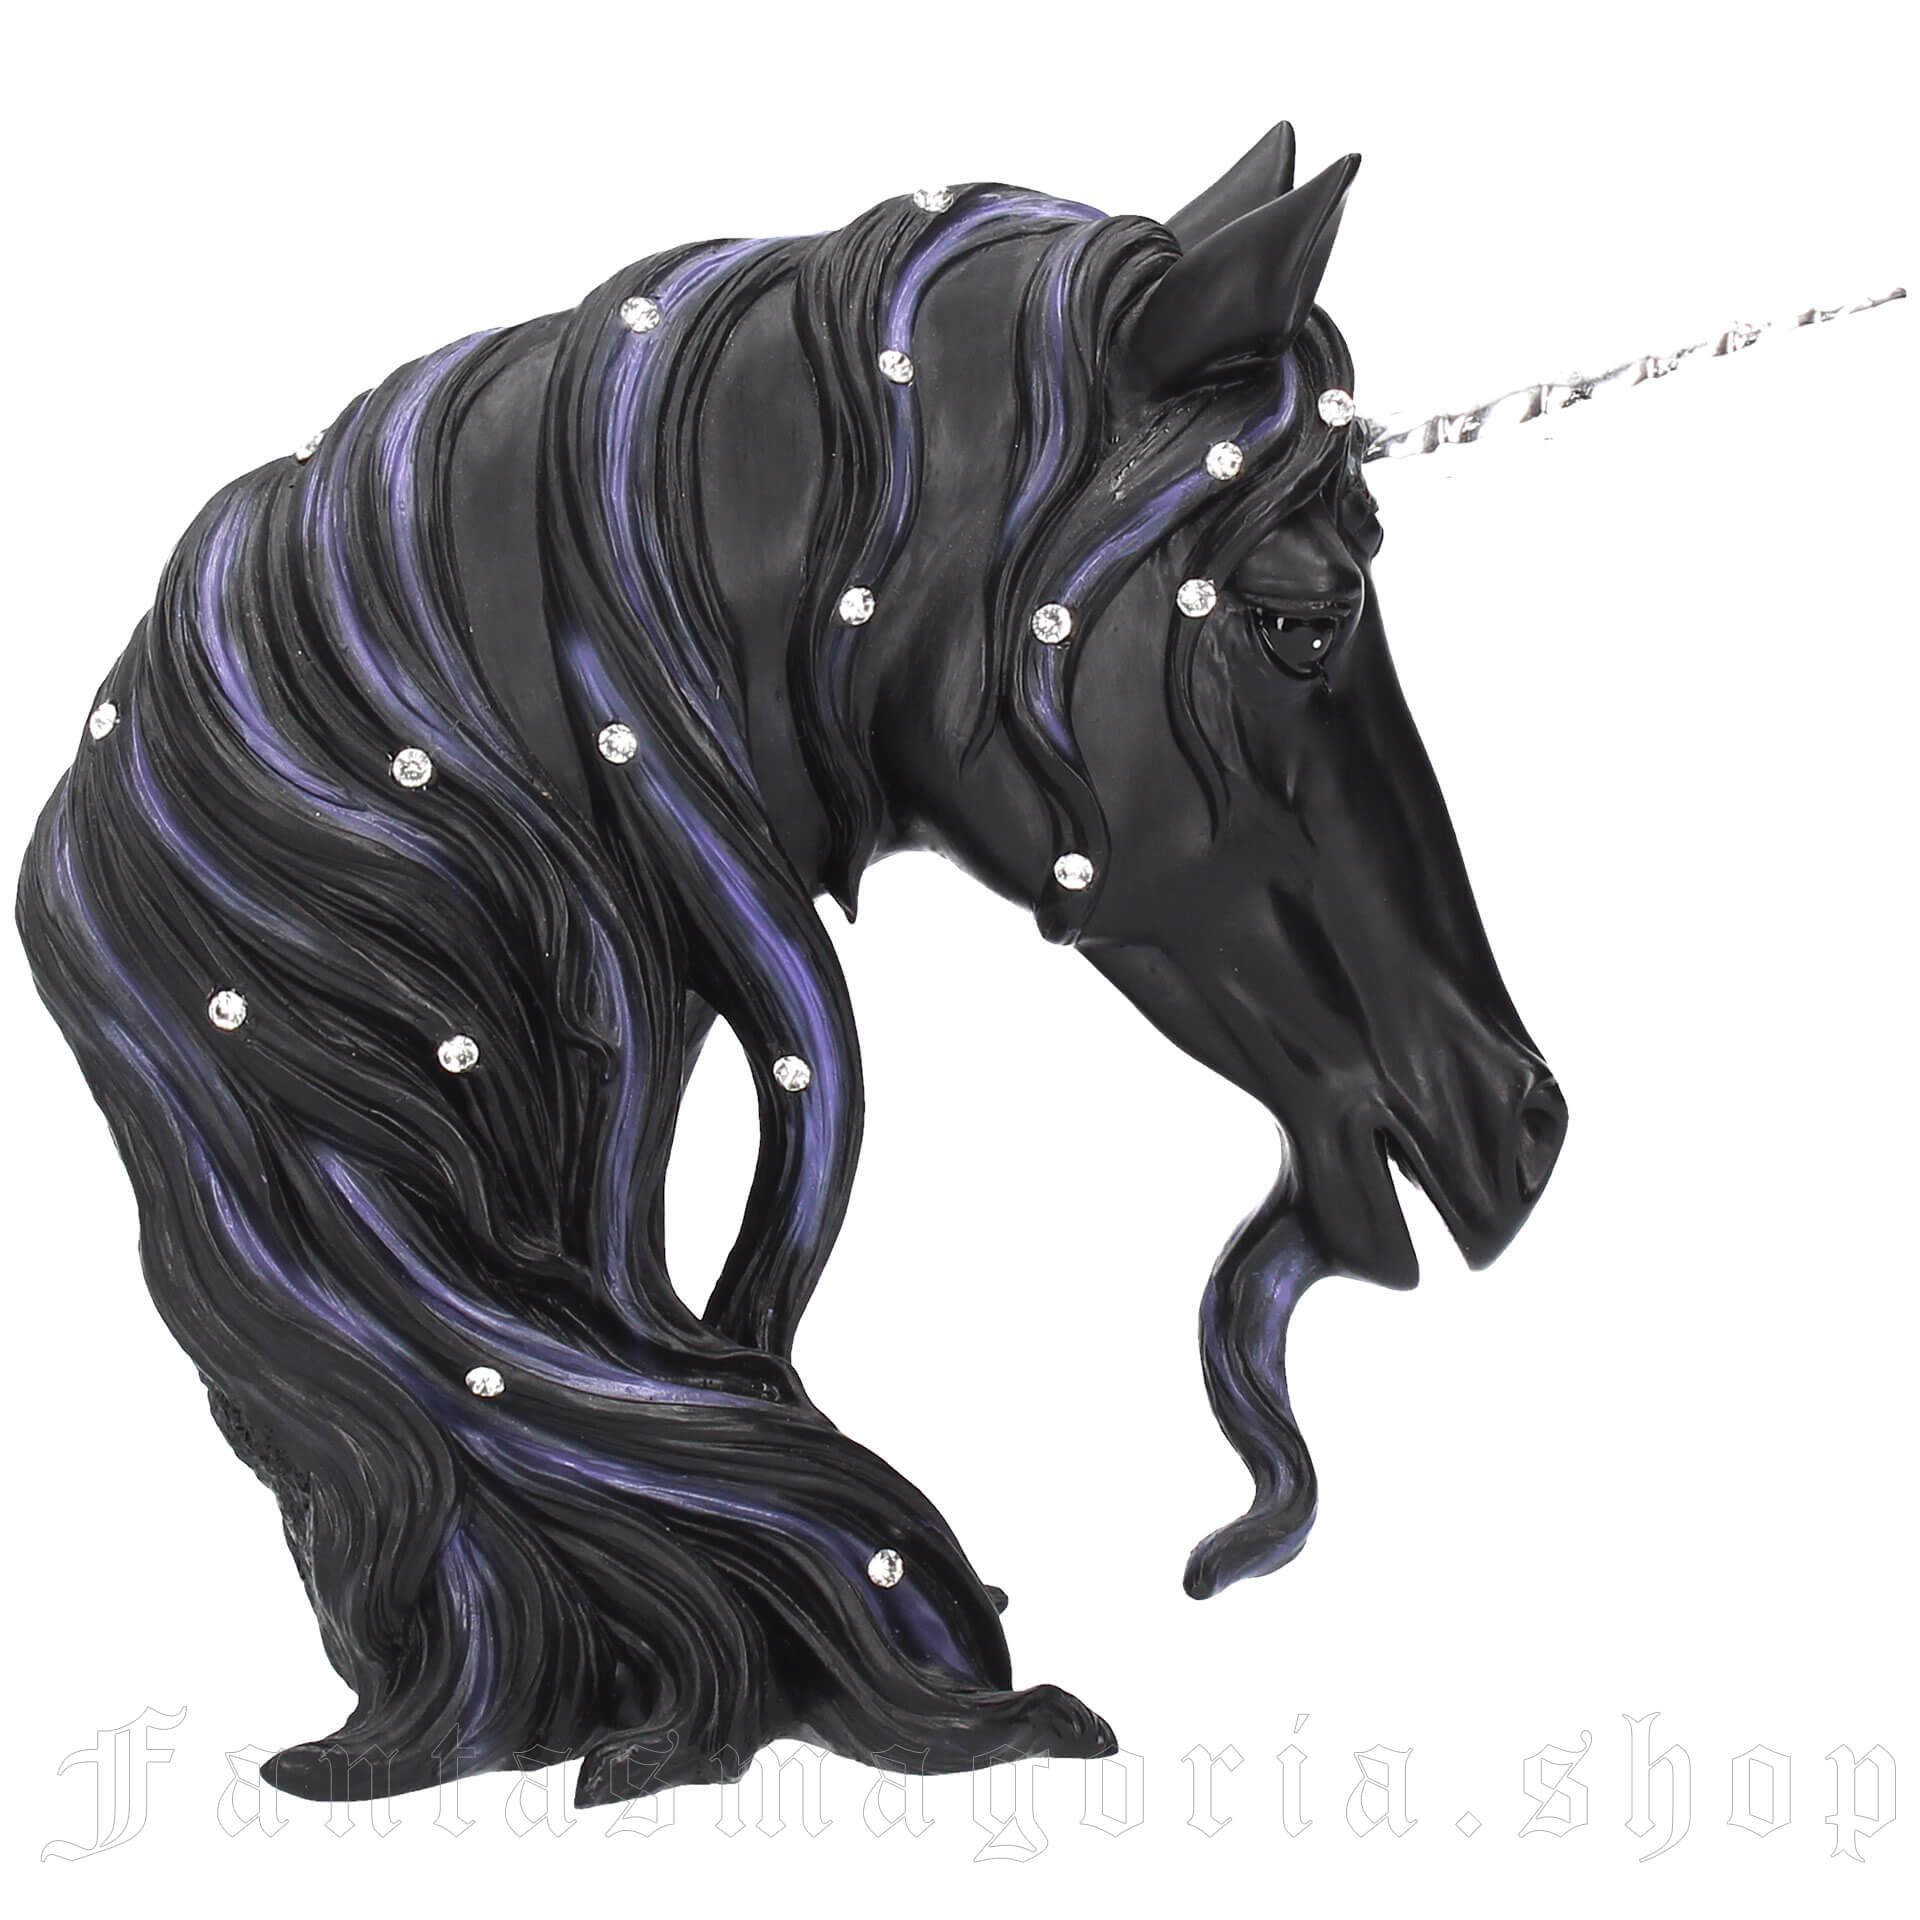 Jewelled Midnight Unicorn Statue (Small)